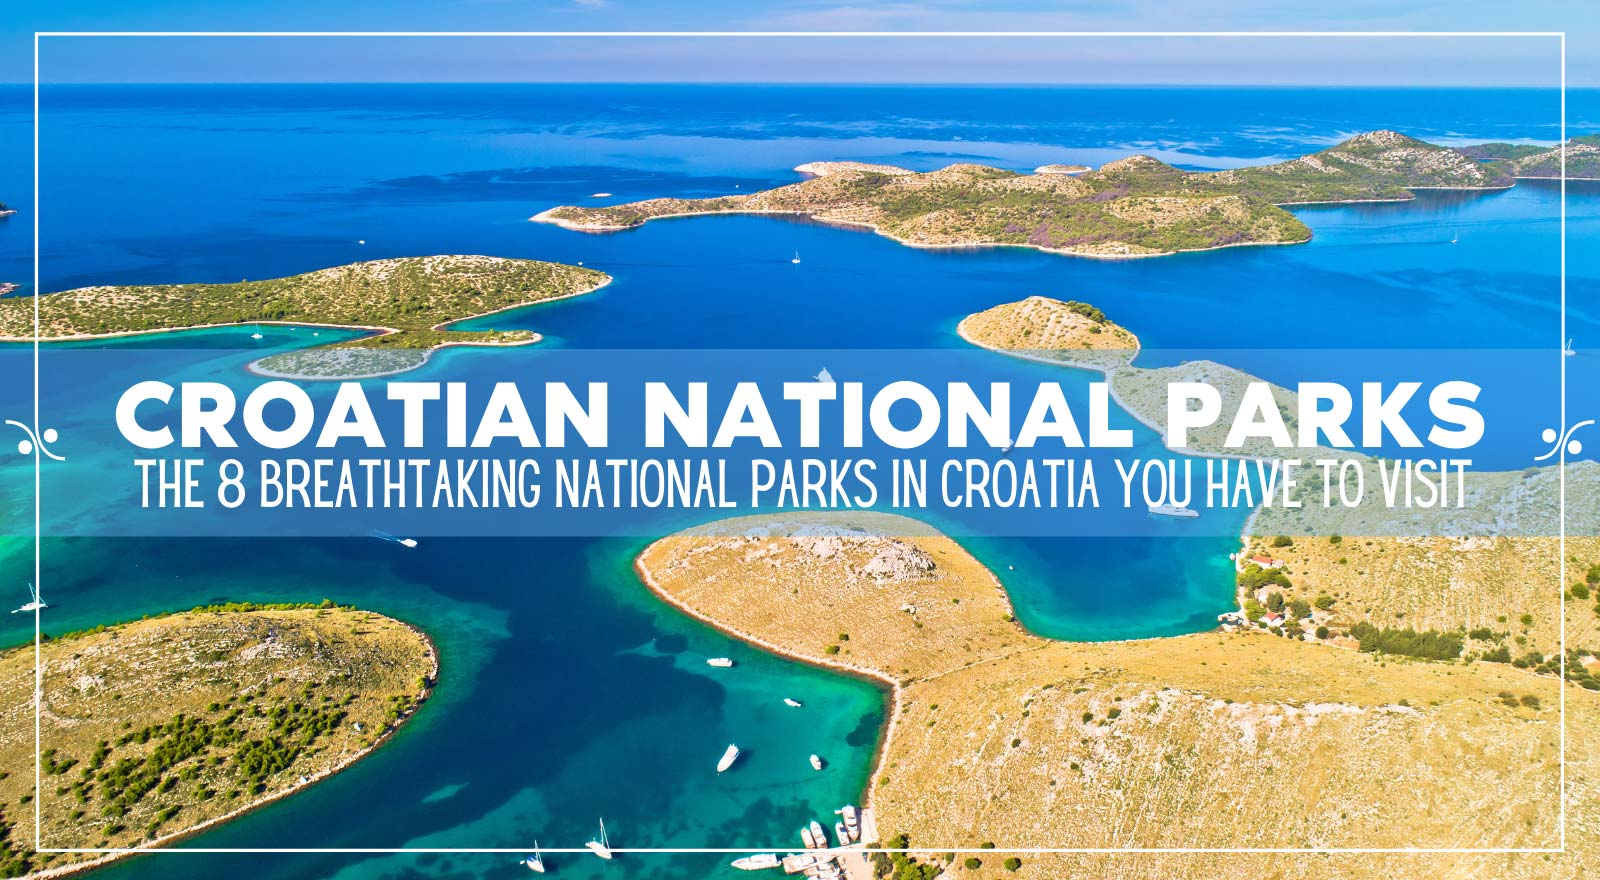 Our Guide to Croatian national parks, Illustration